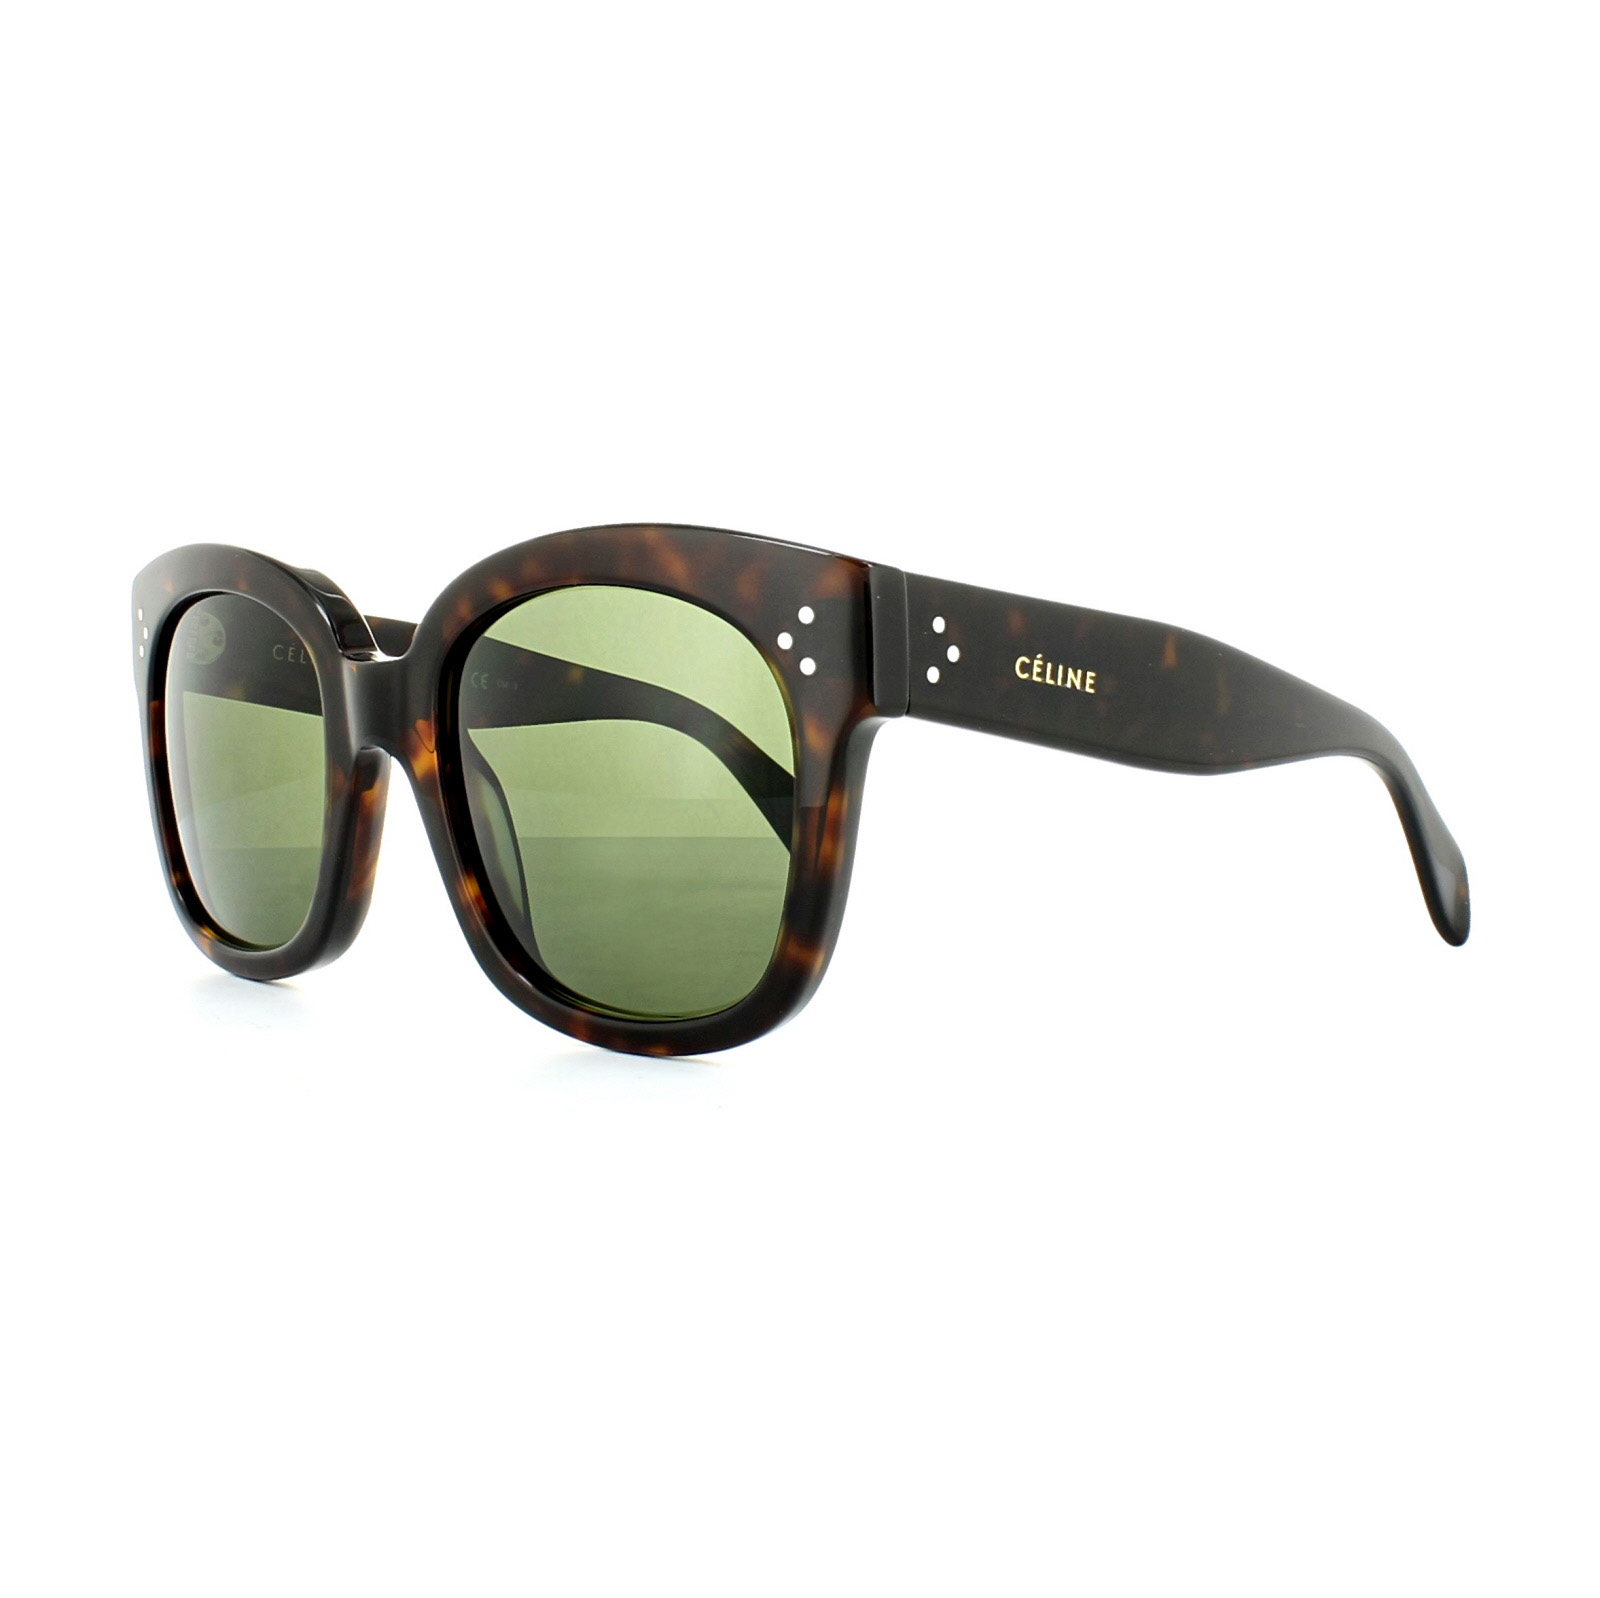 Cheap Celine 41805 S New Audrey Sunglasses Discounted